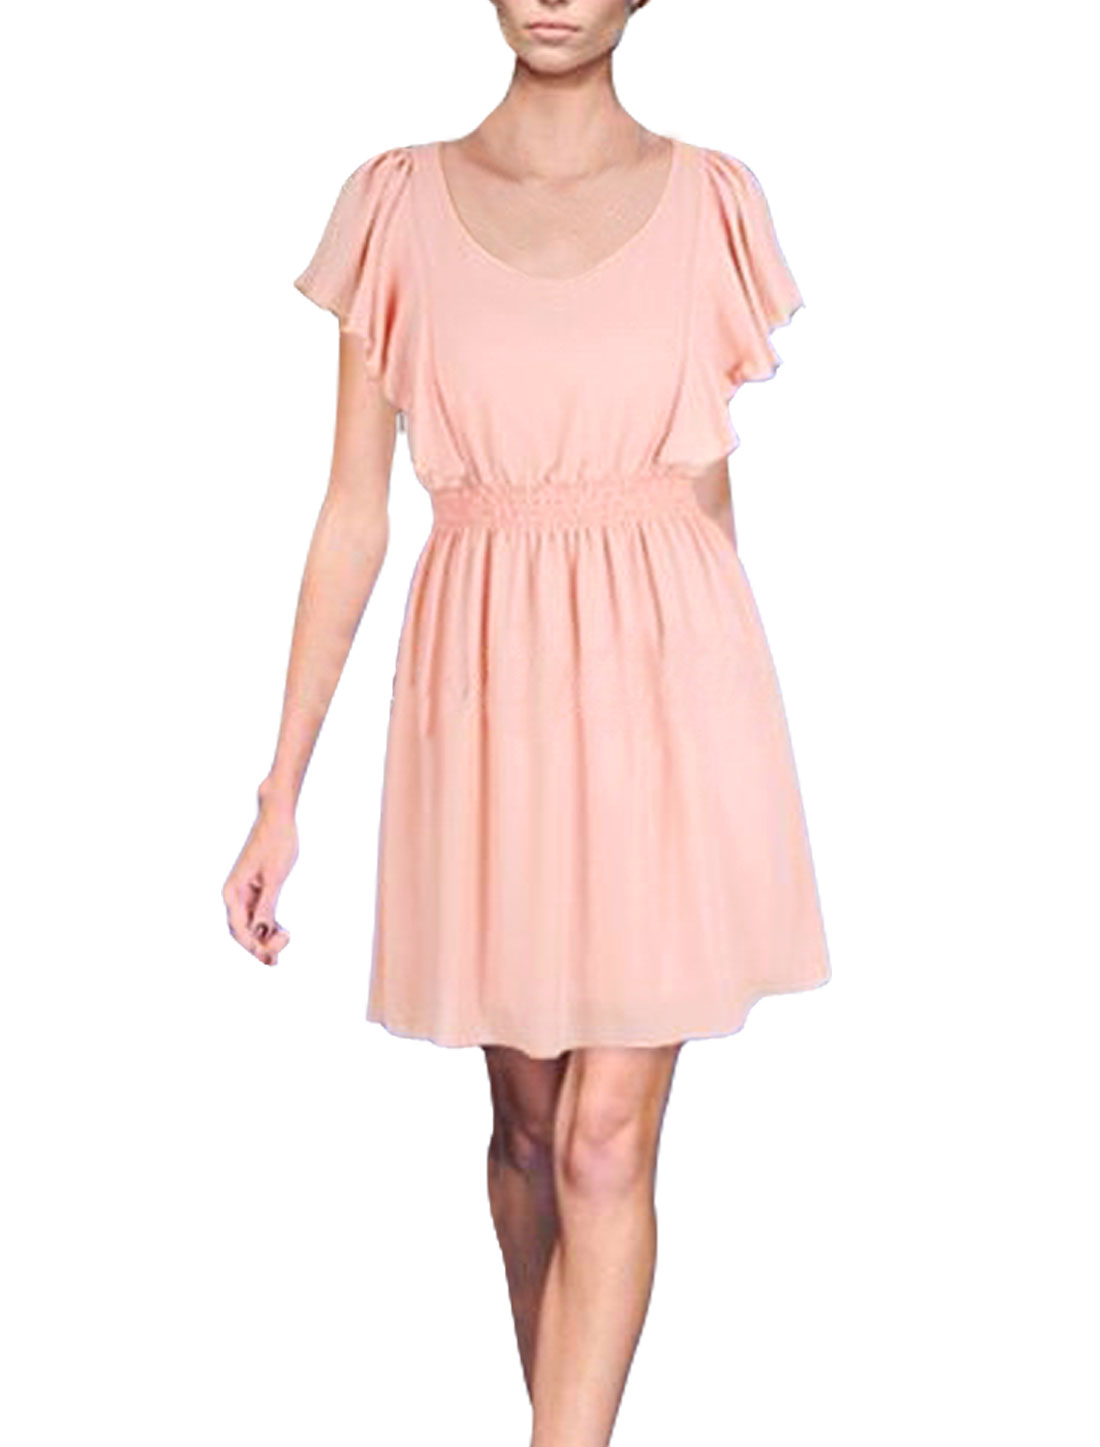 Lady Light Pink V Neck Short Sleeve Smock Waist Semi Sheer Chiffon Mini Dress XS